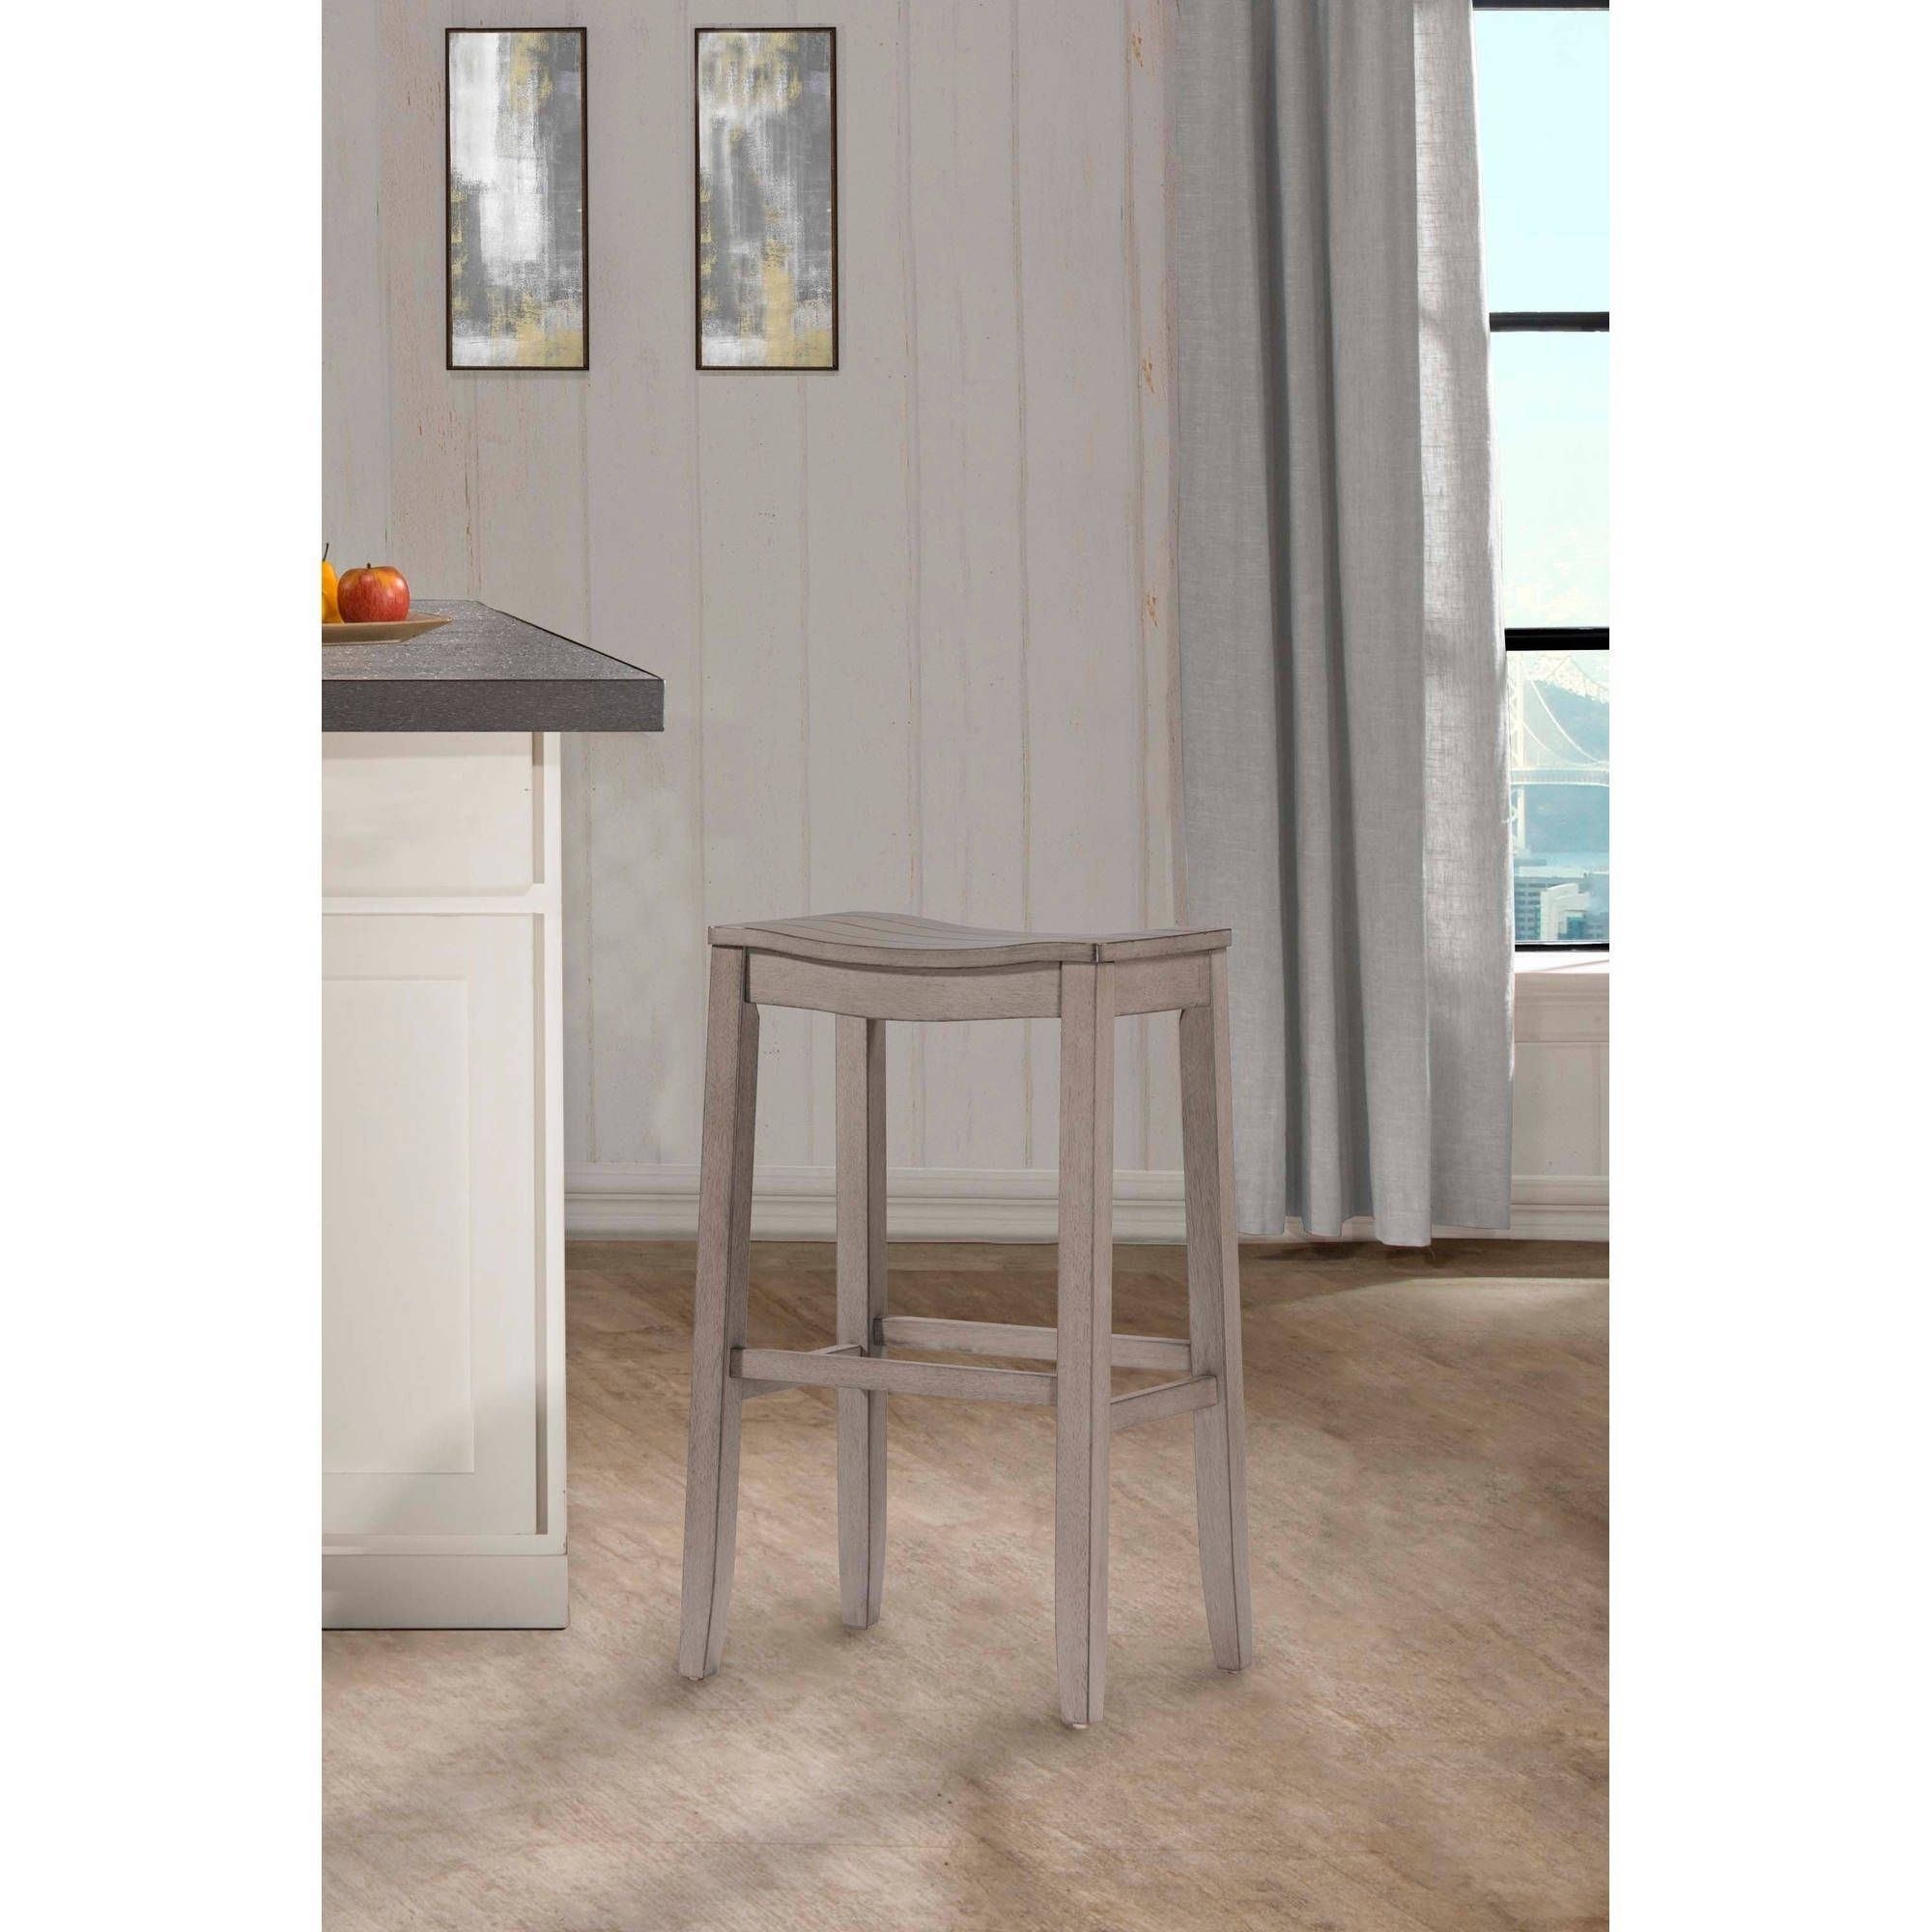 Wondrous The Gray Barn Chatterly Non Swivel Aged Grey Backless Pdpeps Interior Chair Design Pdpepsorg